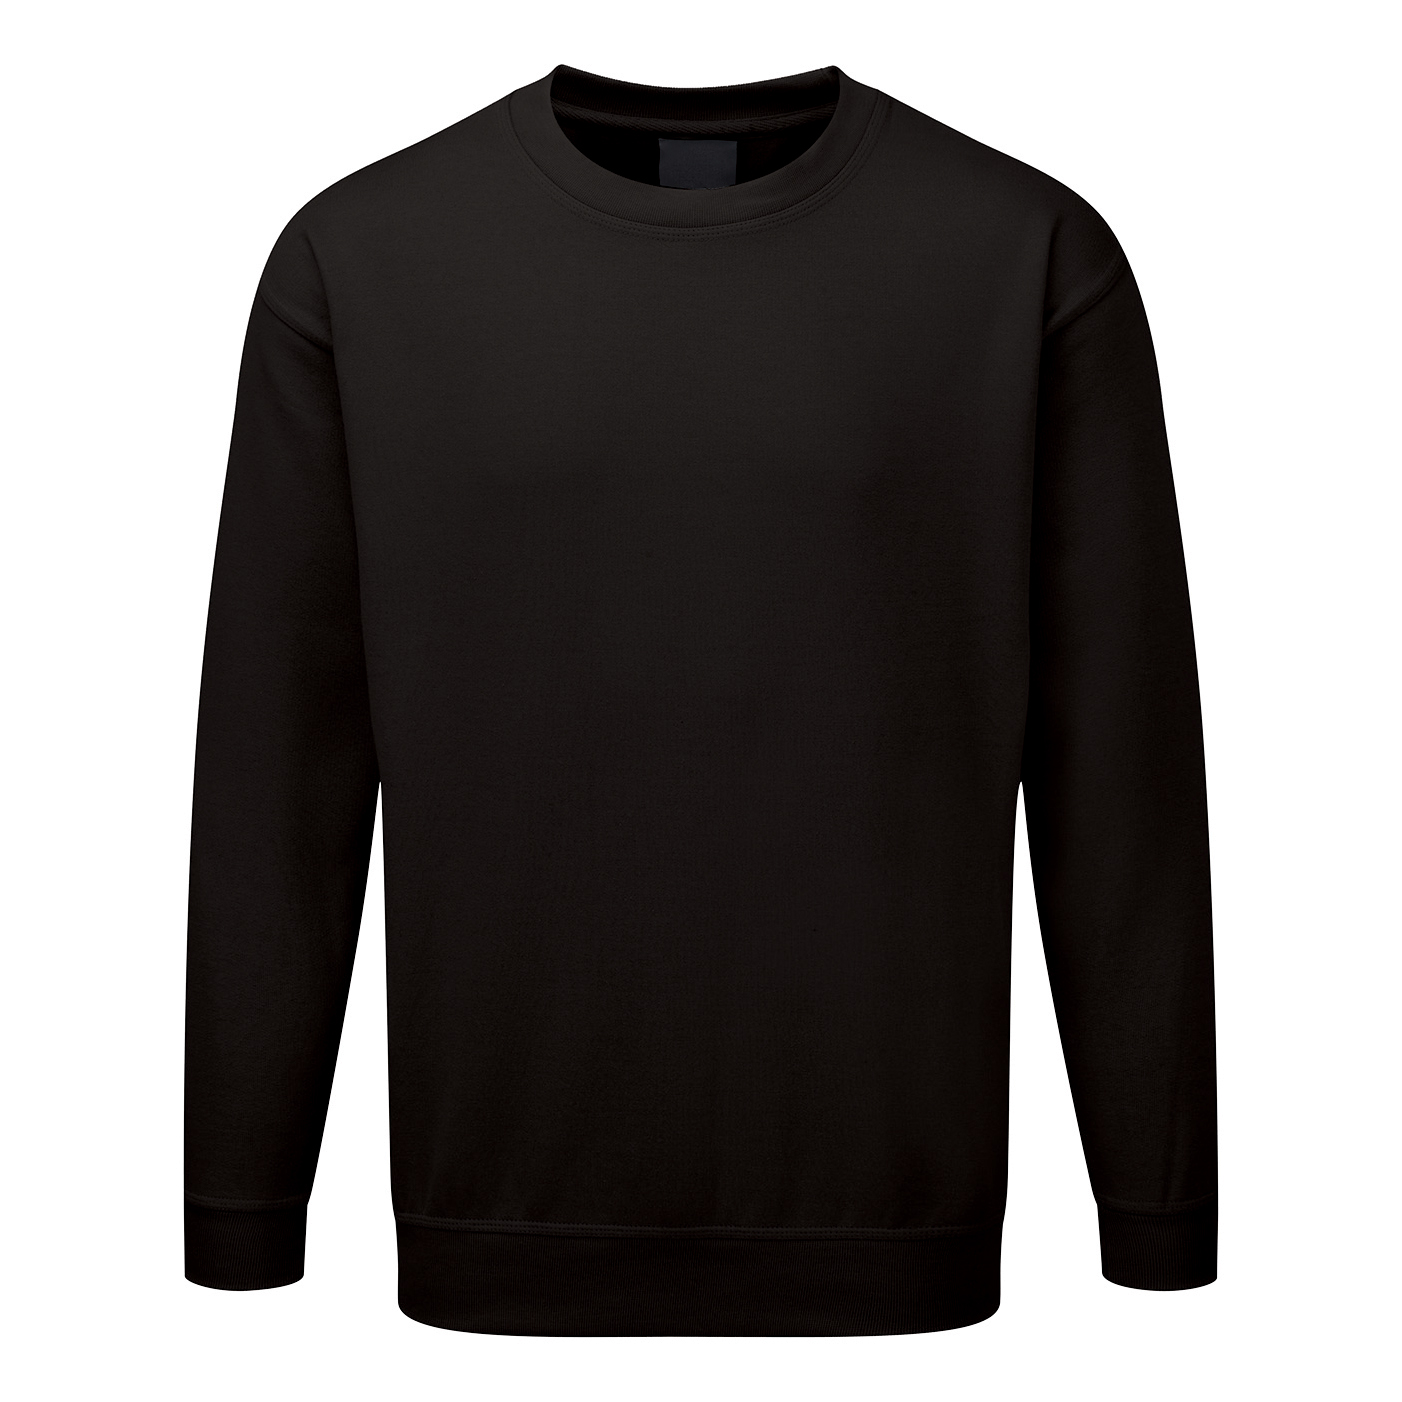 ST Sweatshirt Polyester/Cotton Fabric with Crew Neck Medium Black Ref 56672 *Approx 3 Day Leadtime*